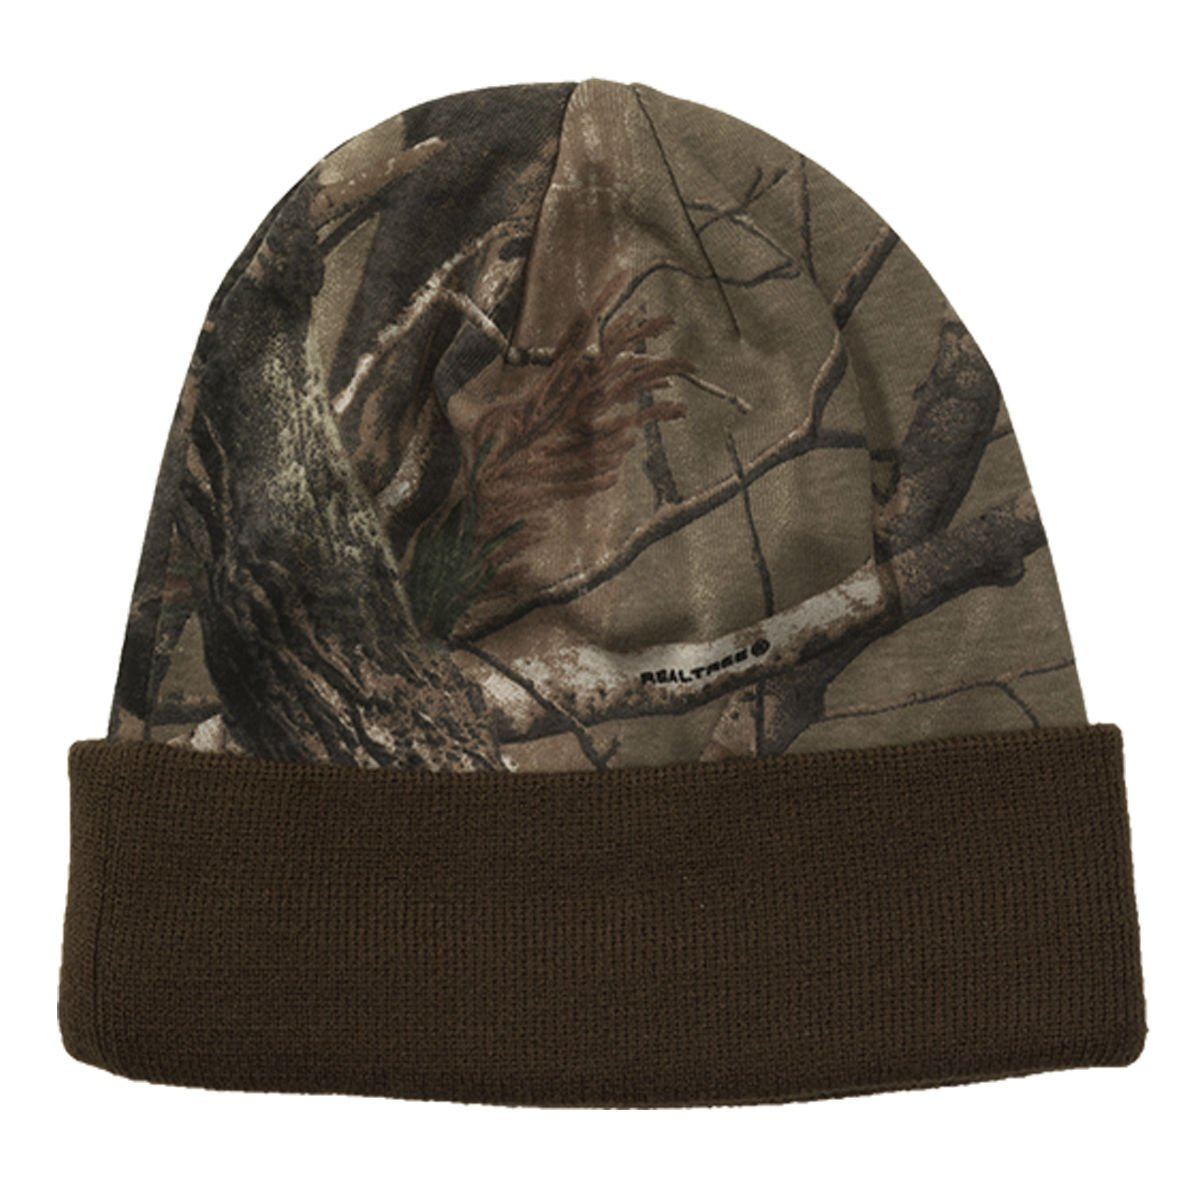 4d4bc34bce4 Amazon.com   Realtree Licensed Camo Knit Cuff Beanie Brown   Sports    Outdoors